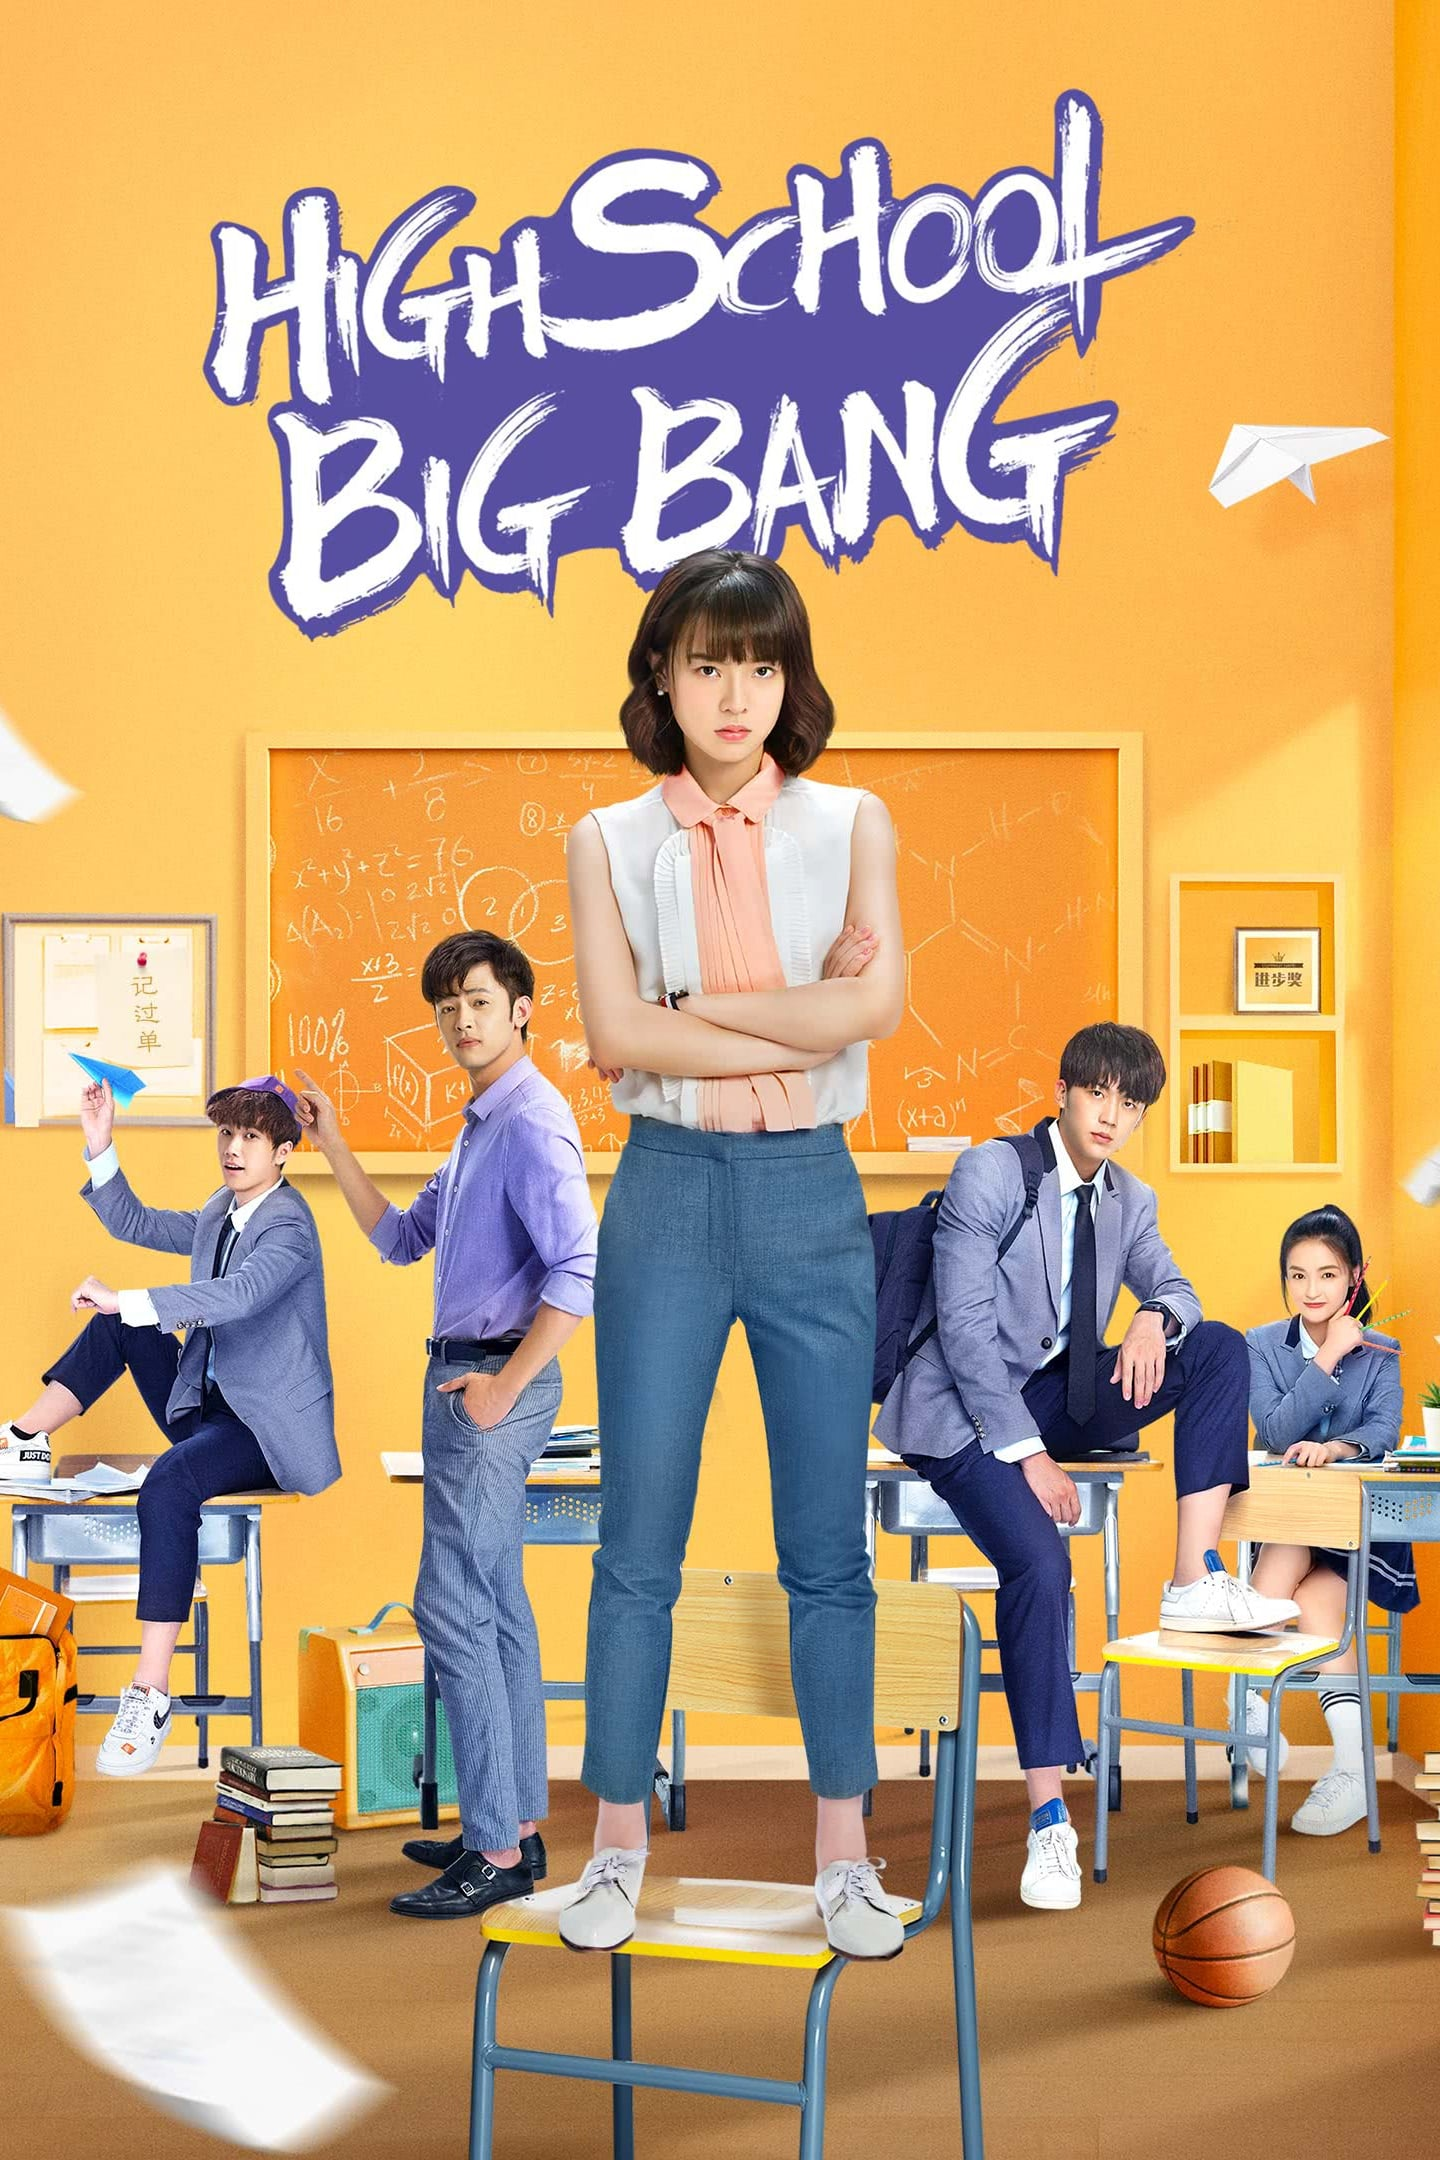 High School Big Bang